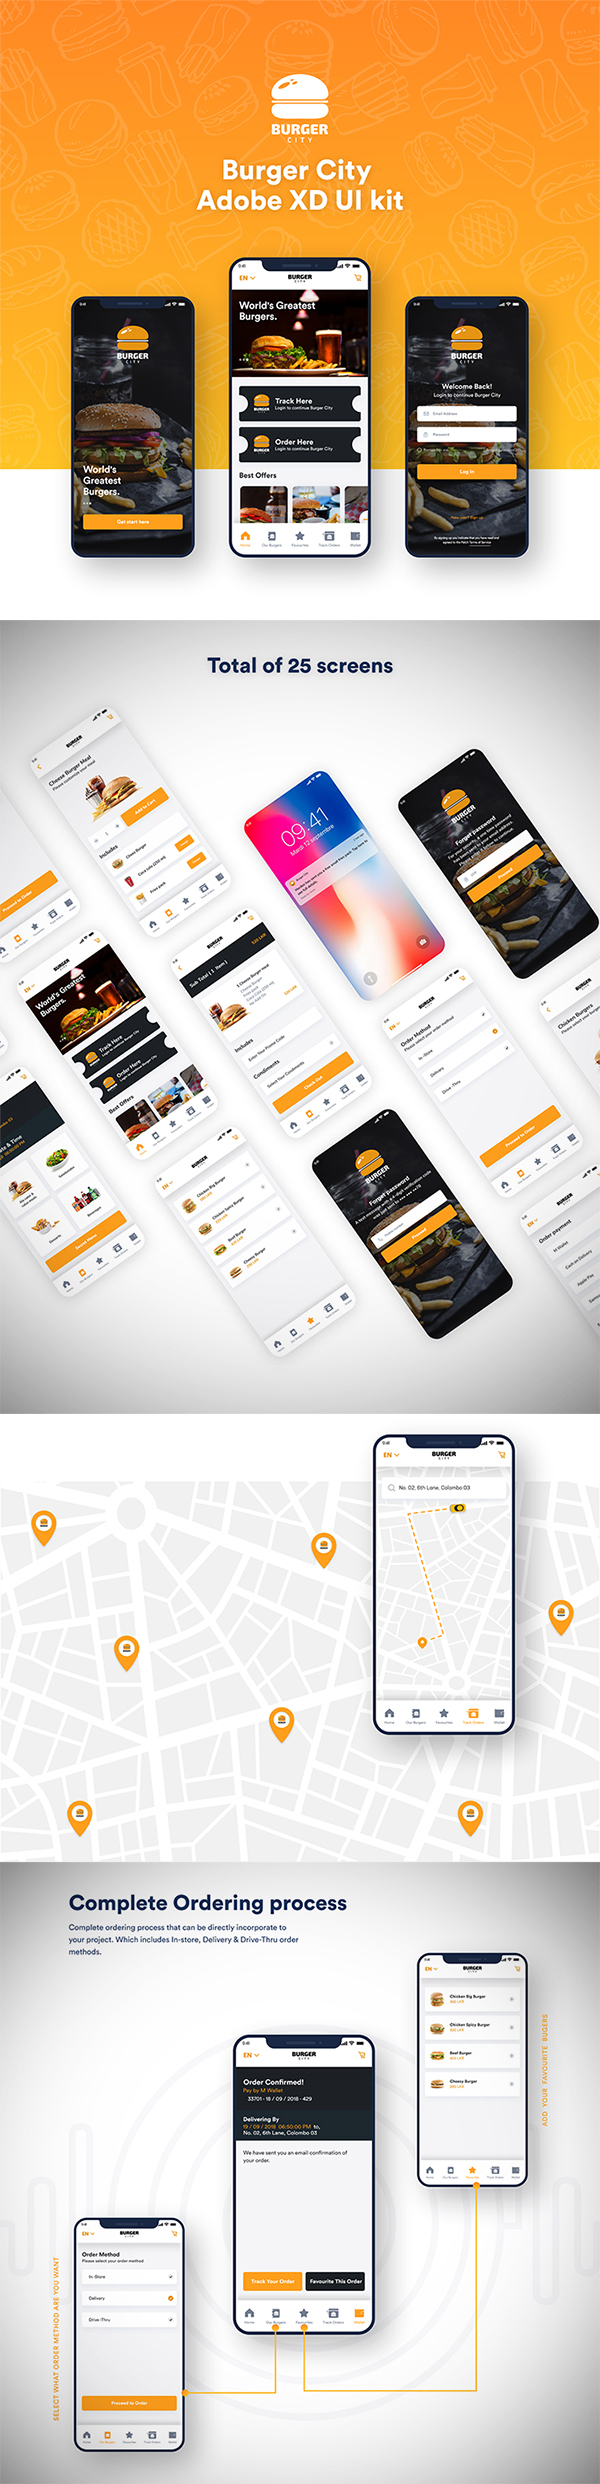 Free Download Creative Burger Store Mobile App (Adobe XD UI kit)